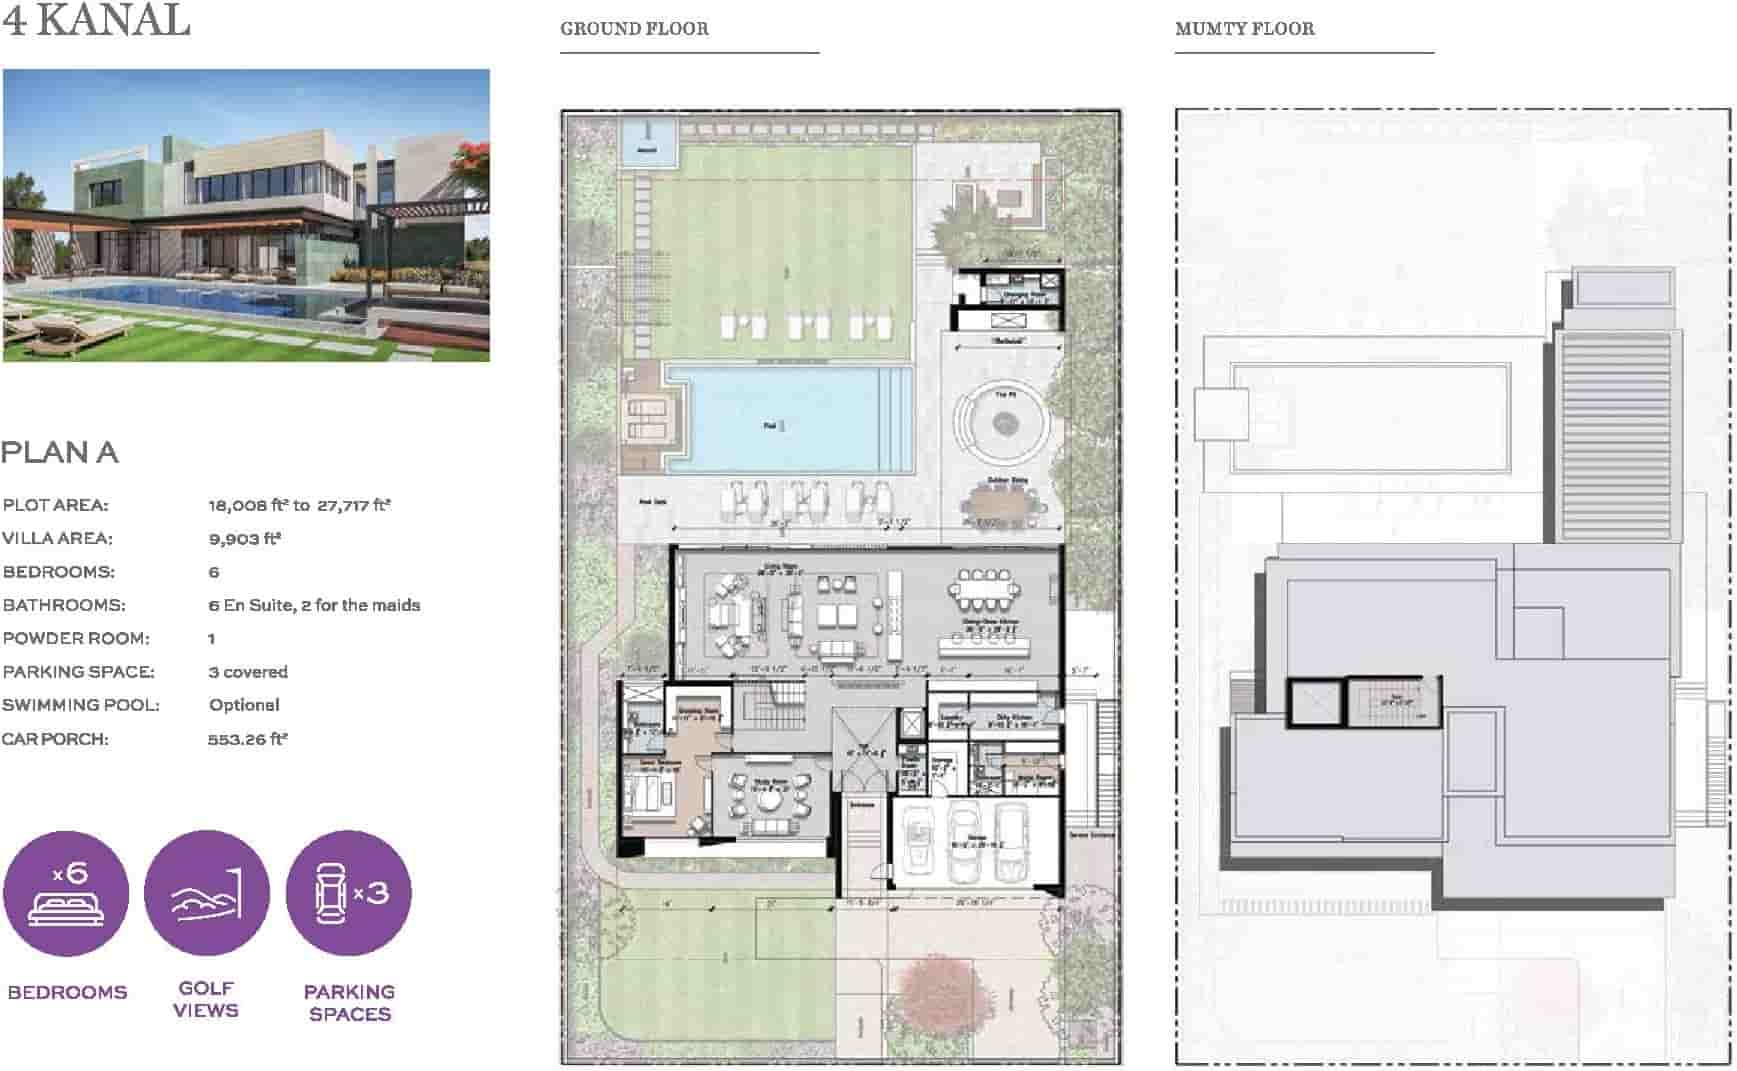 Eighteen 4 Kanal Villa Layout Plan A